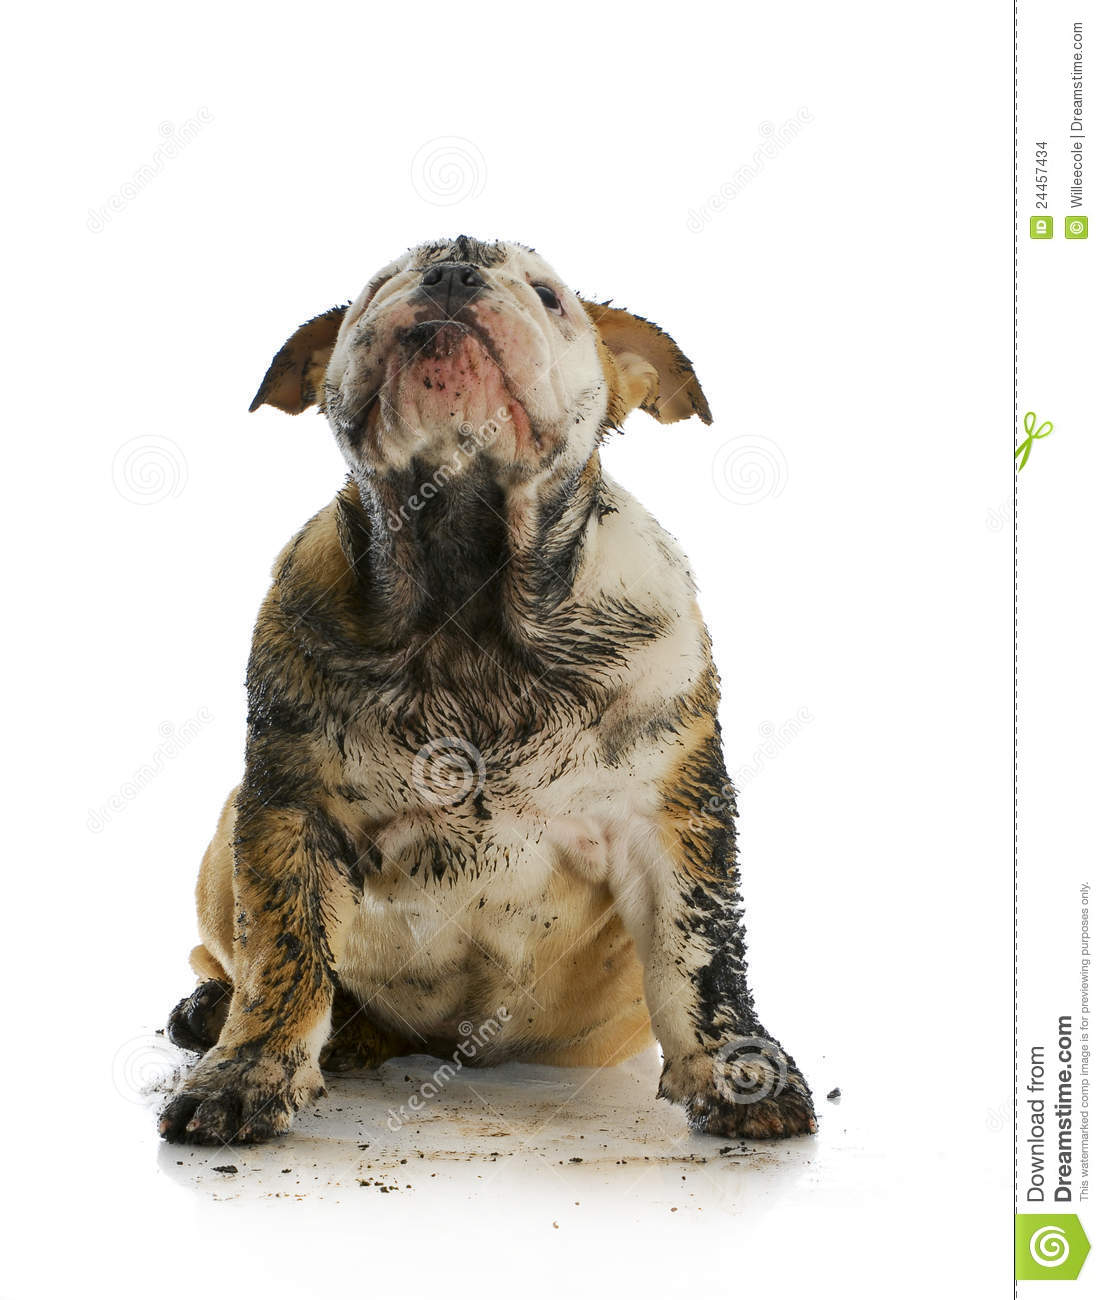 Dirty Dog Looking Up Stock Photo Image Of Cute Panting